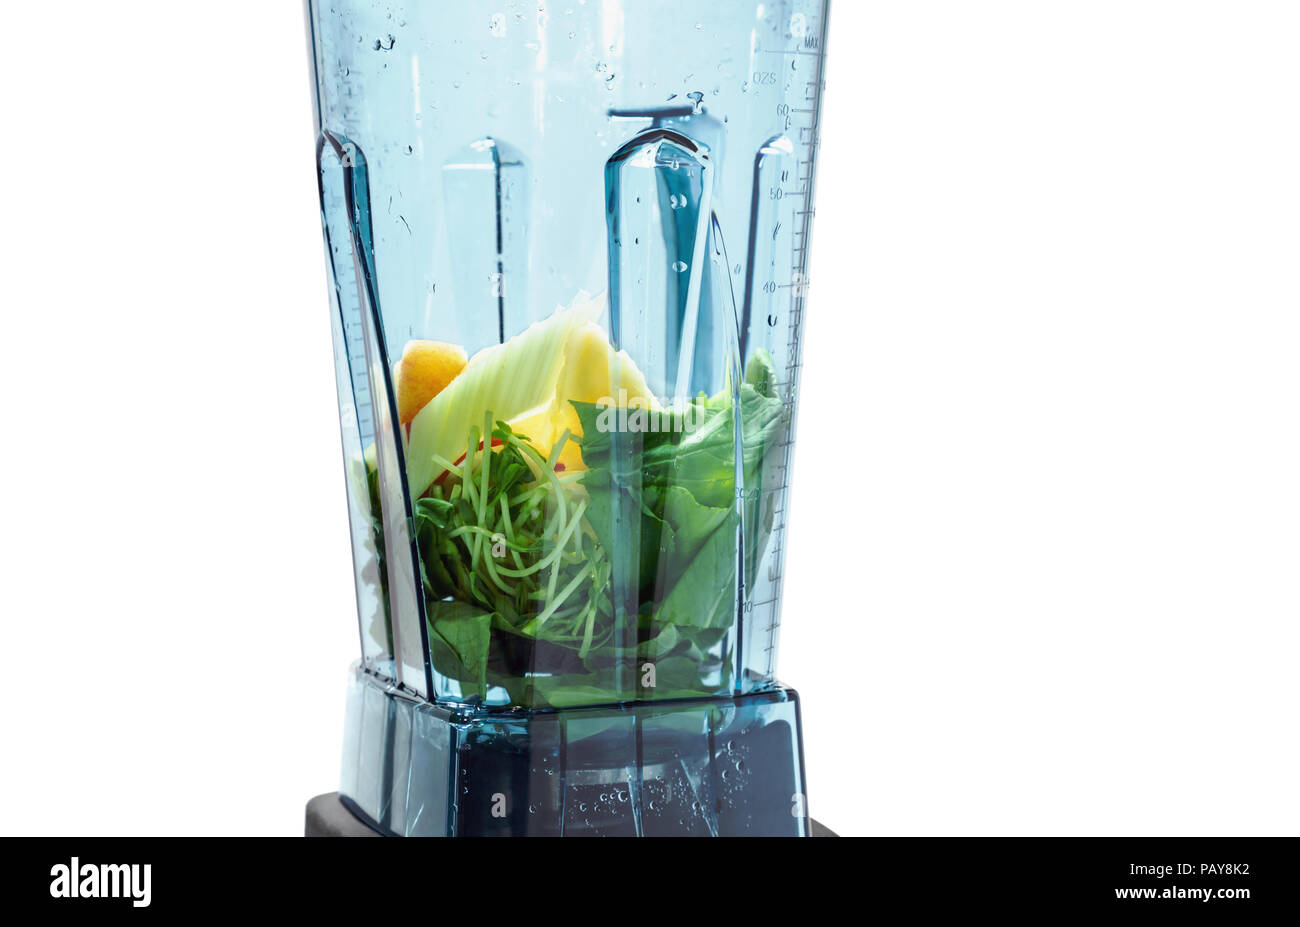 Healthy smoothie for weight loss. Ingredients for healthy smoothie in blender with white background. Ingredients such as: spinach, celery, wheat germ. - Stock Image